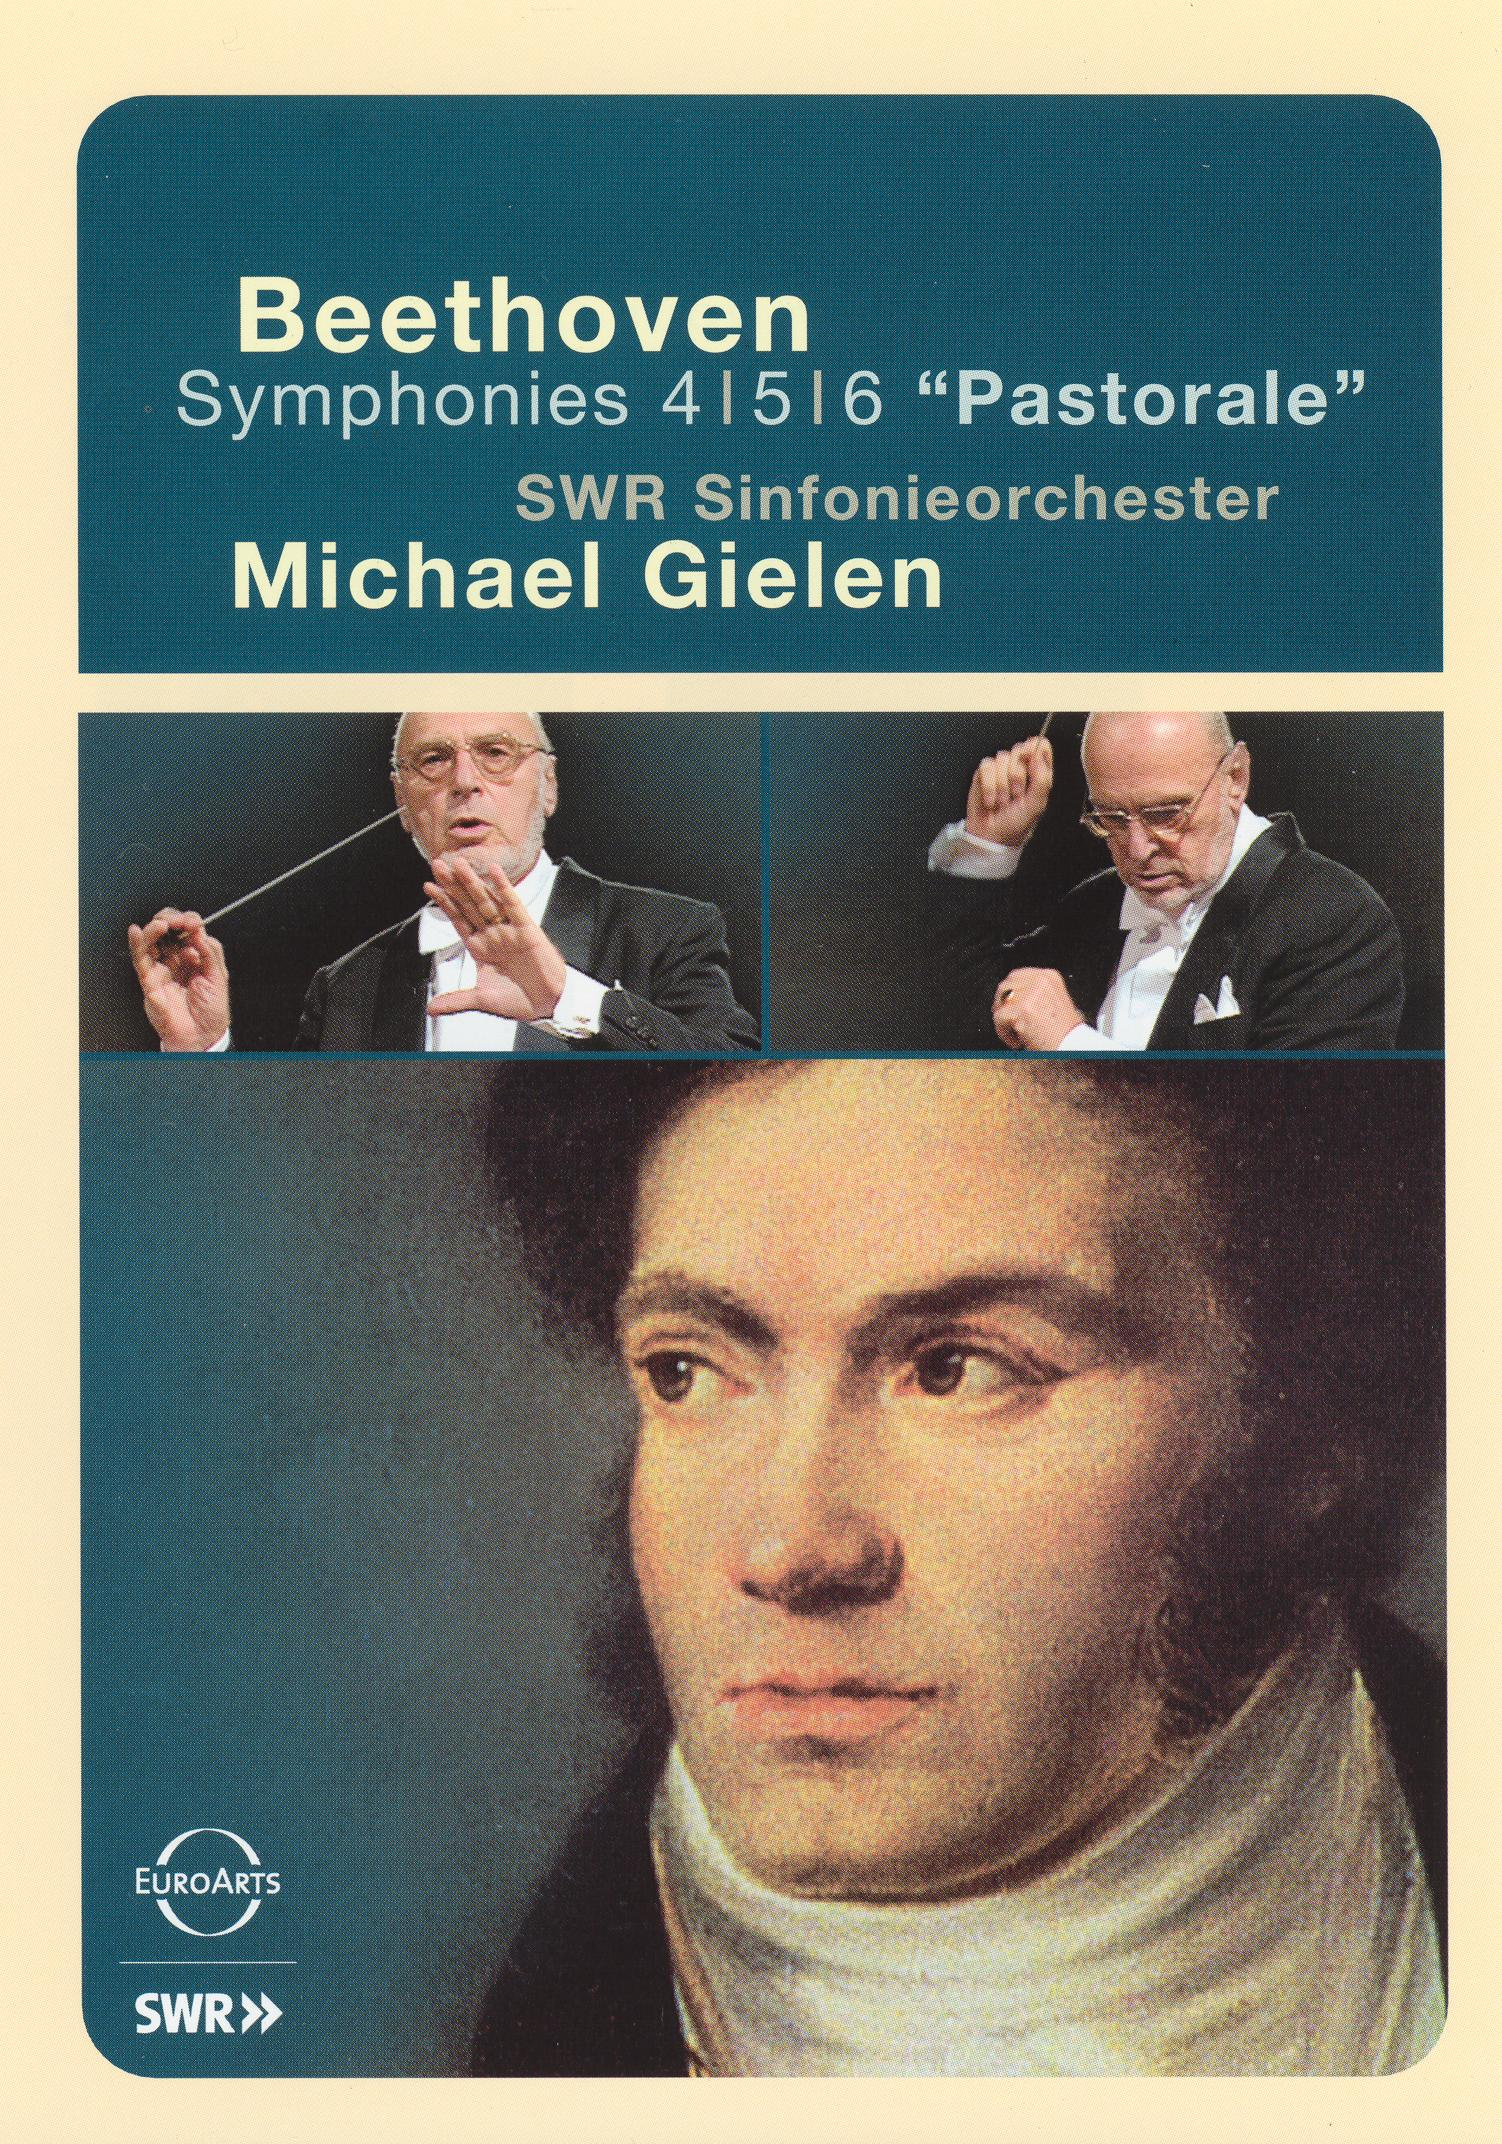 Michael Gielen/SWR Sinfonieorchester: Beethoven Symphonies Nos. 4, 5, & 6